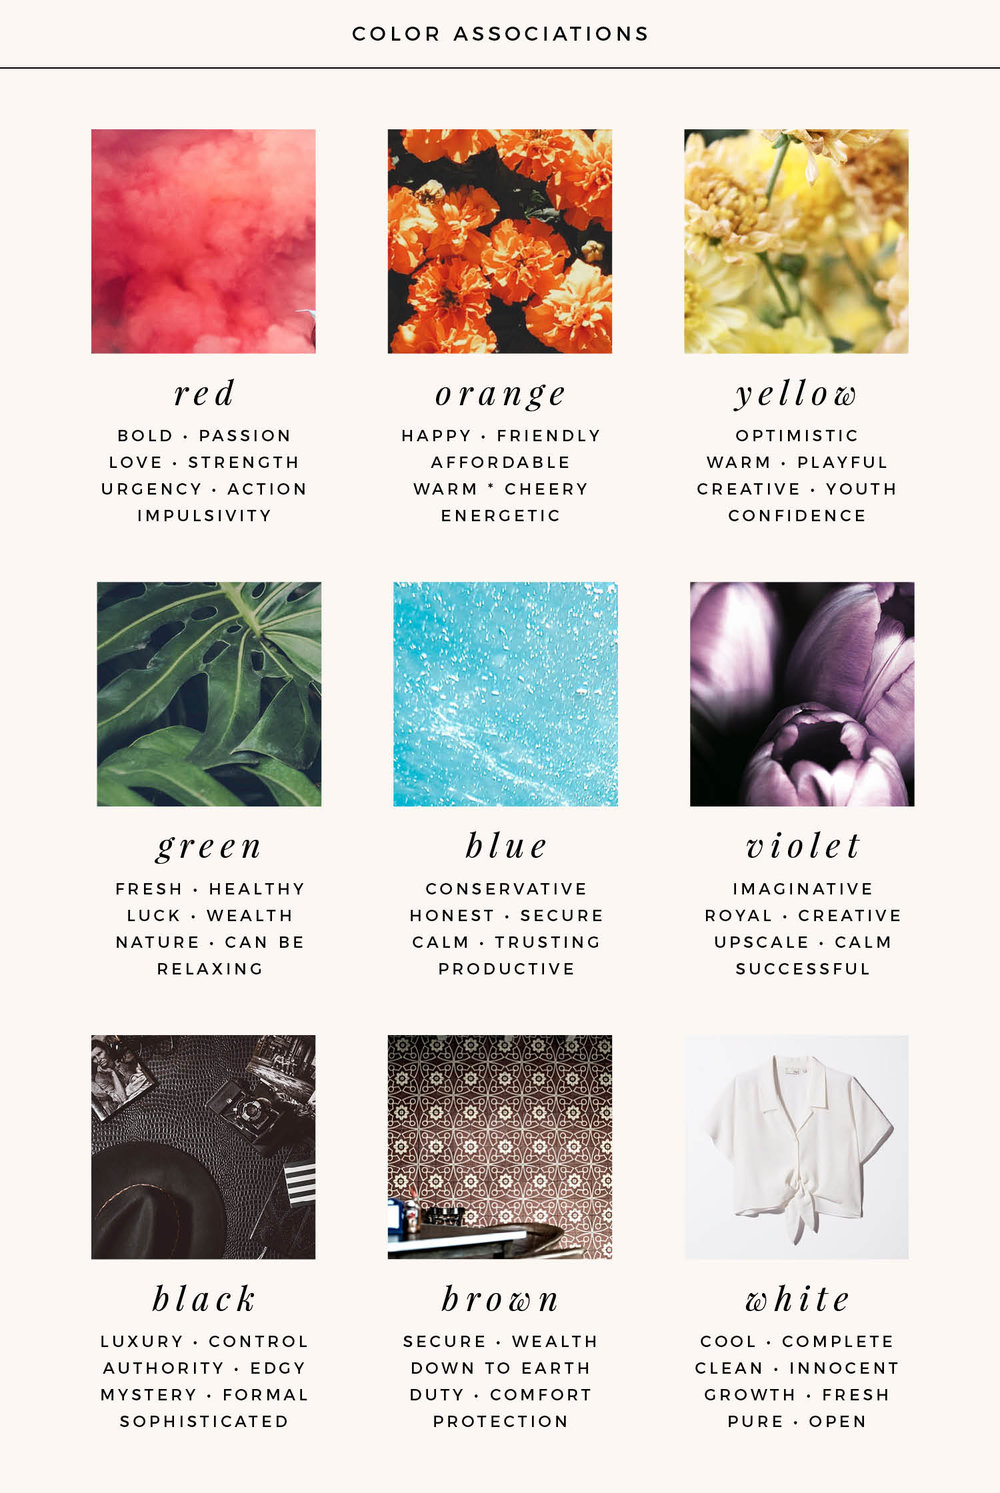 Color associations for different colors